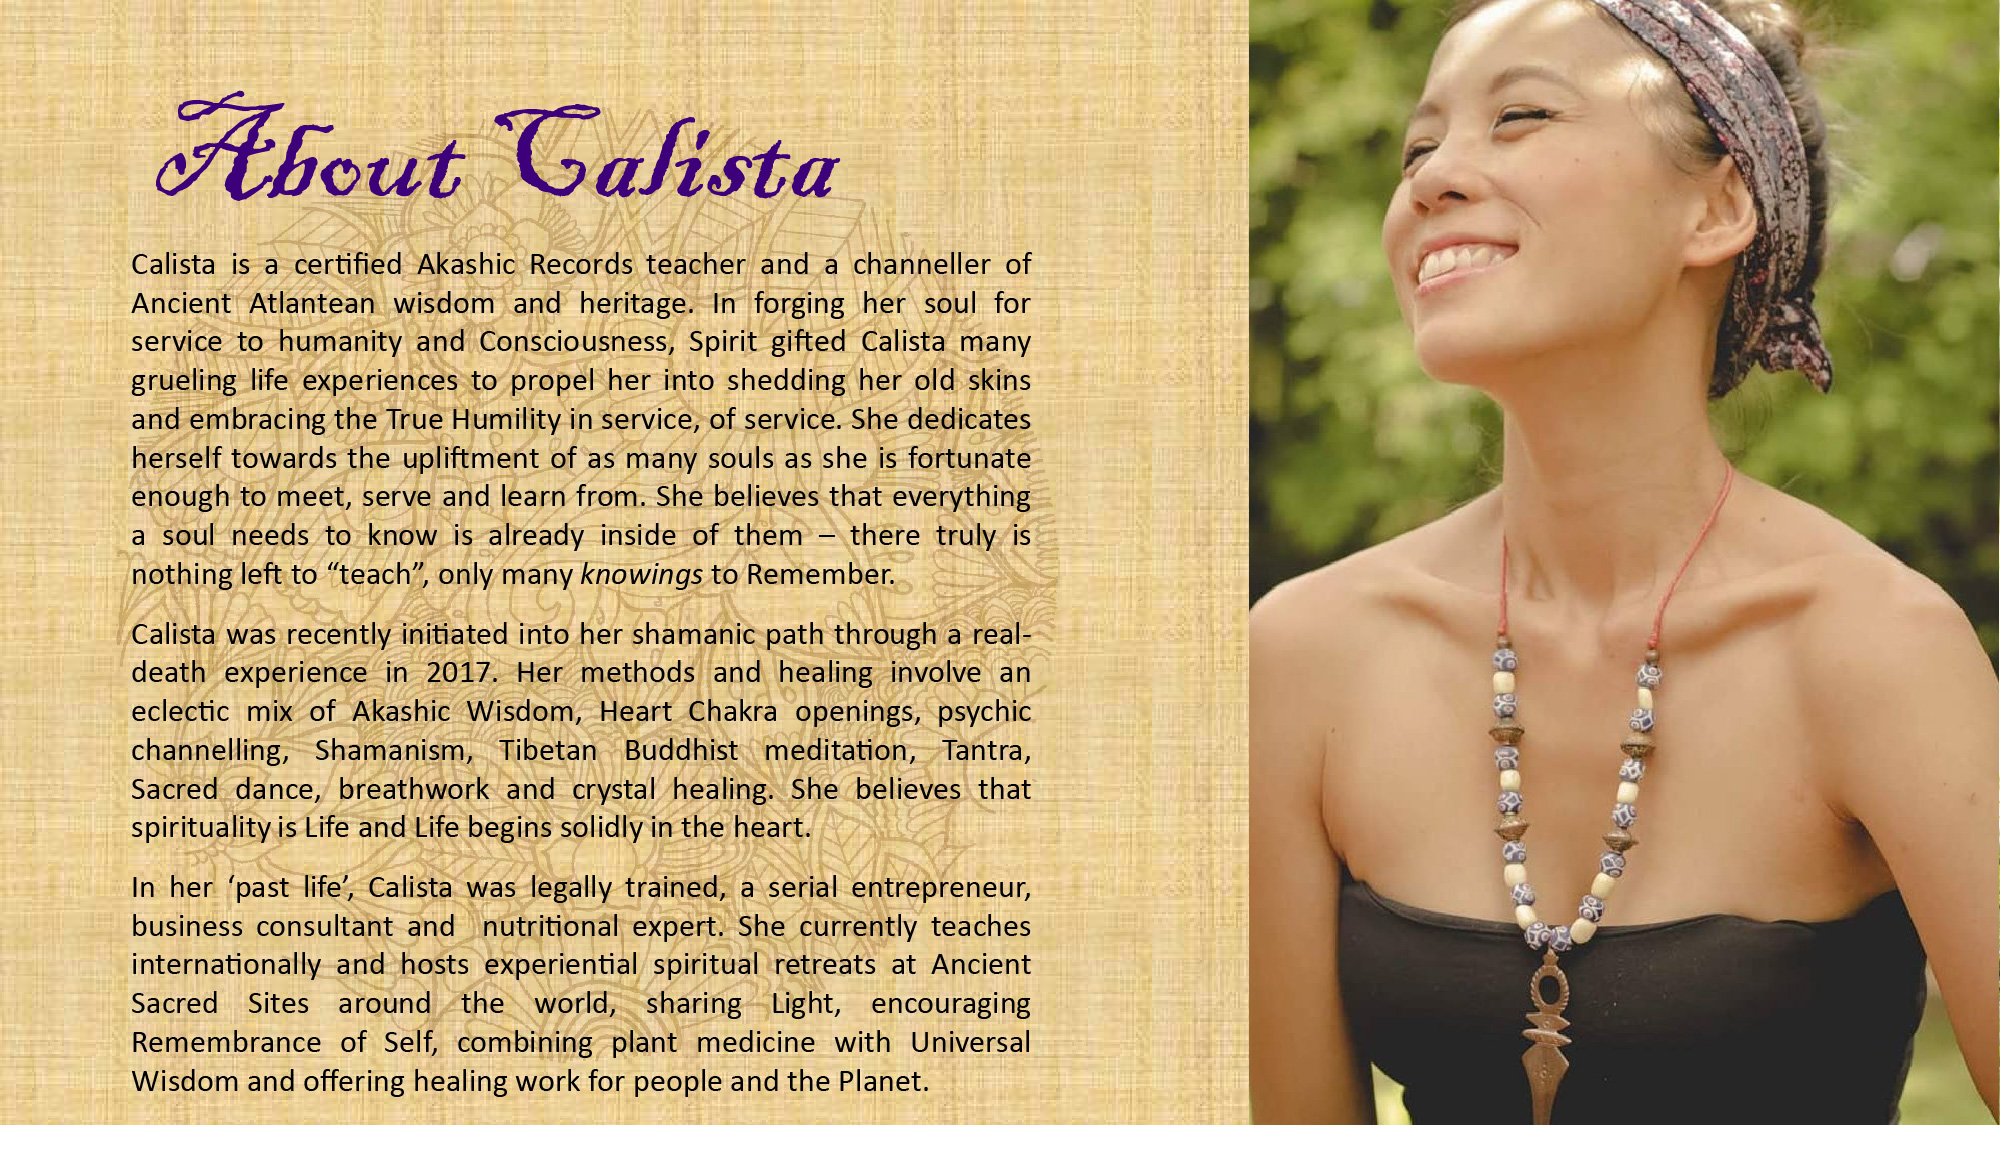 Calista Goh is a certified Akashic records teacher and channeller of Ancient Wisdom